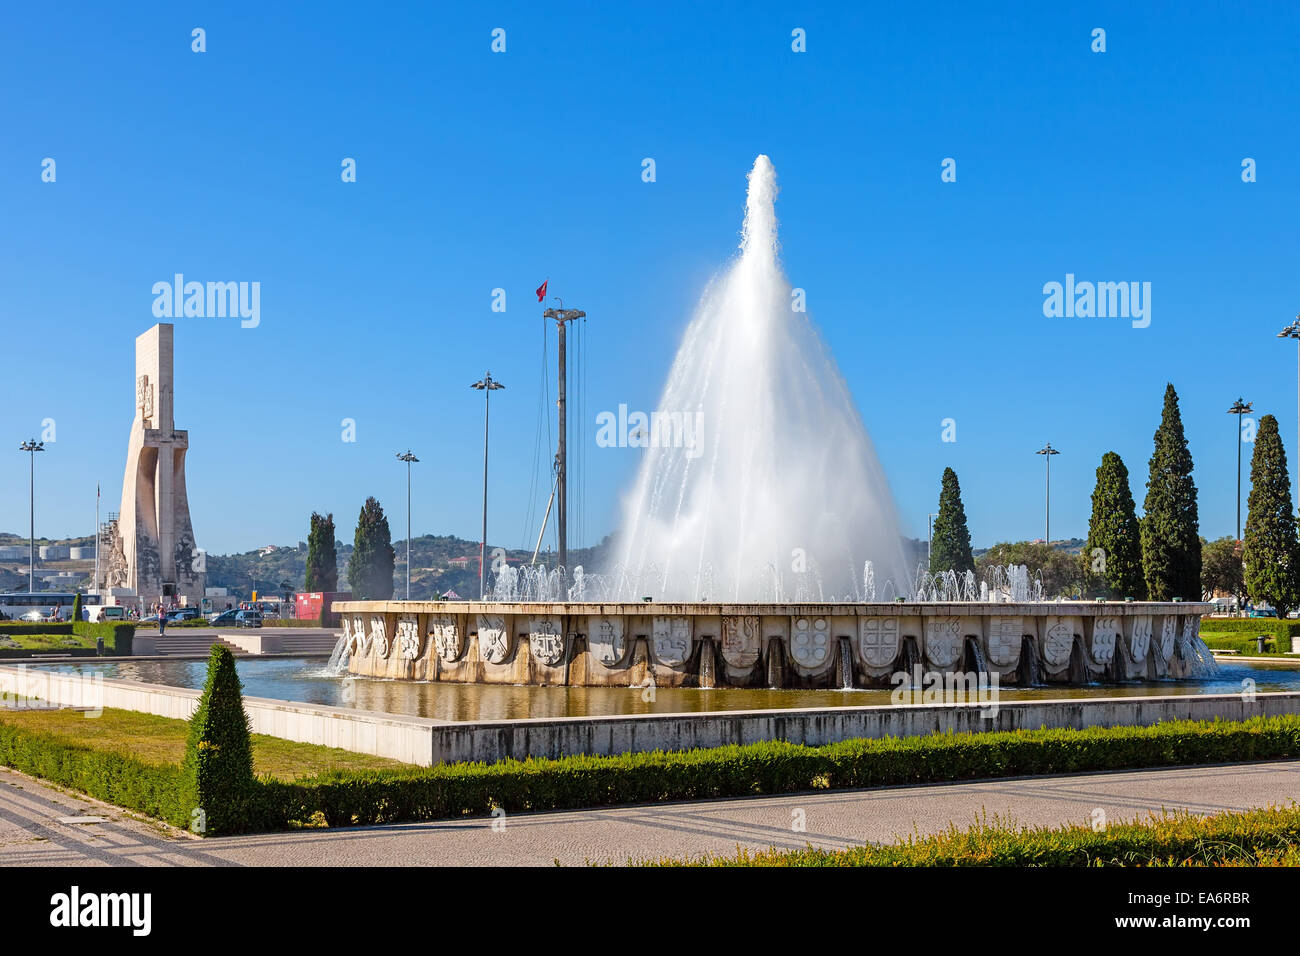 Fountain in the Imperio garden with Padrao dos Descobrimentos (left) in Lisbon, Portugal. - Stock Image